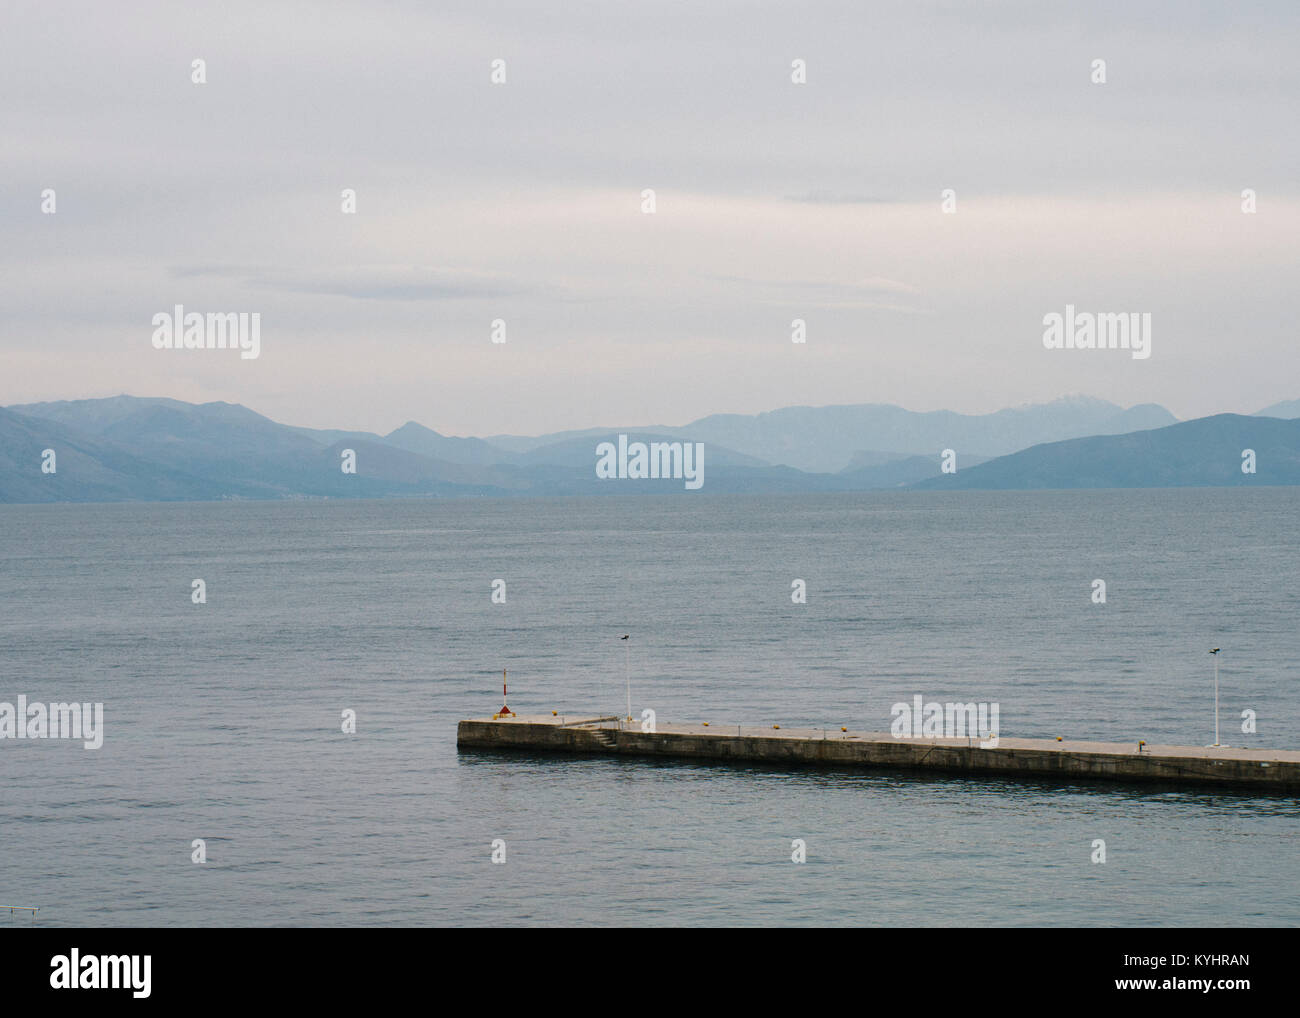 Looking over to the greek mainland from Corfu. - Stock Image